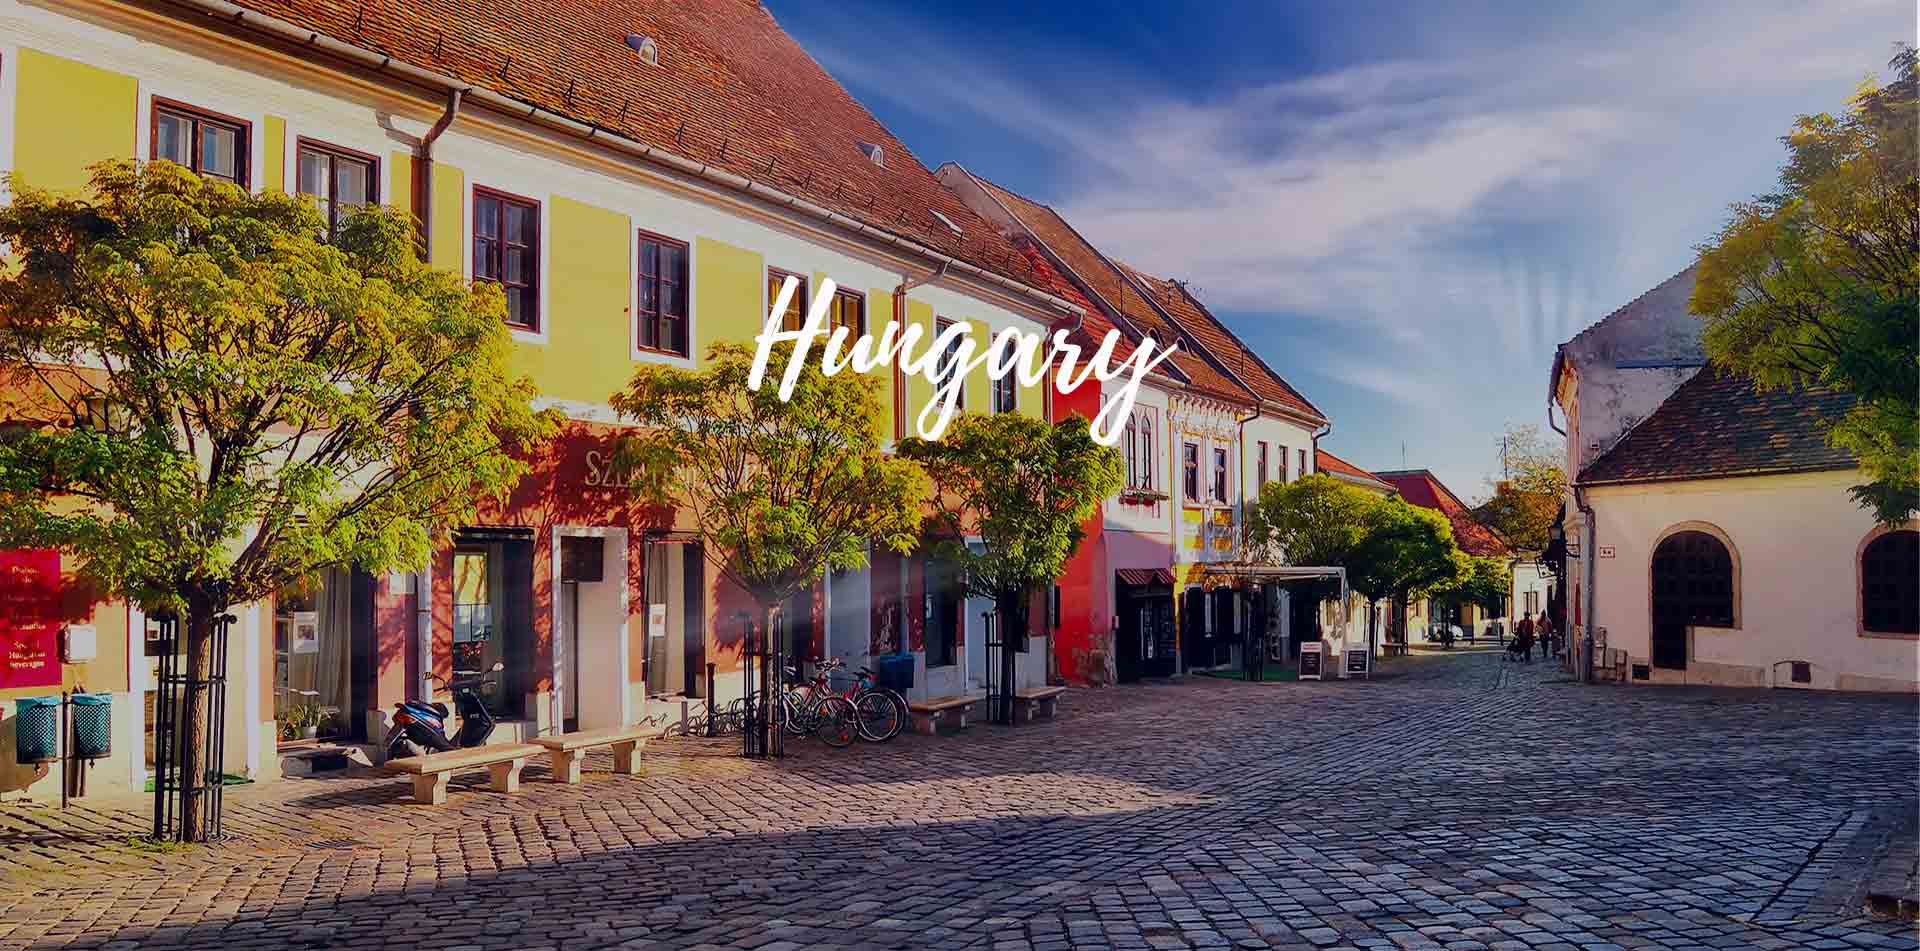 Europe Hungary Budapest cobblestone city street with colorful storefronts - luxury vacation destinations